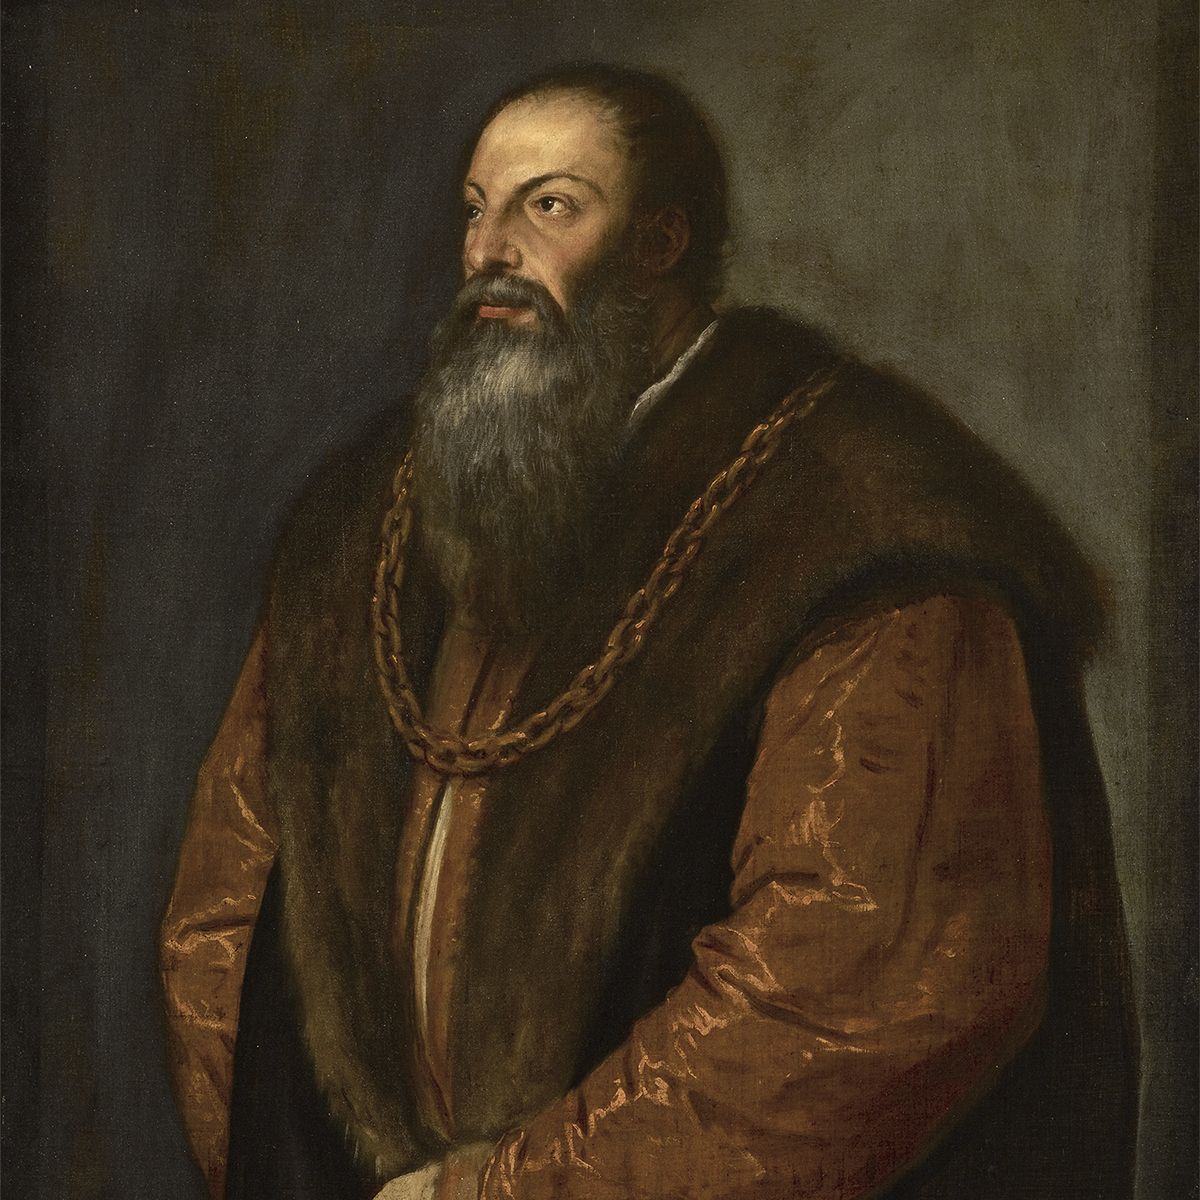 A detail of Titian's oil painting of Renaissance writer, Pietro Aretino: the bearded man wears a sleeveless black cloak with a fur collar over a copper-gold robe and a gold chain